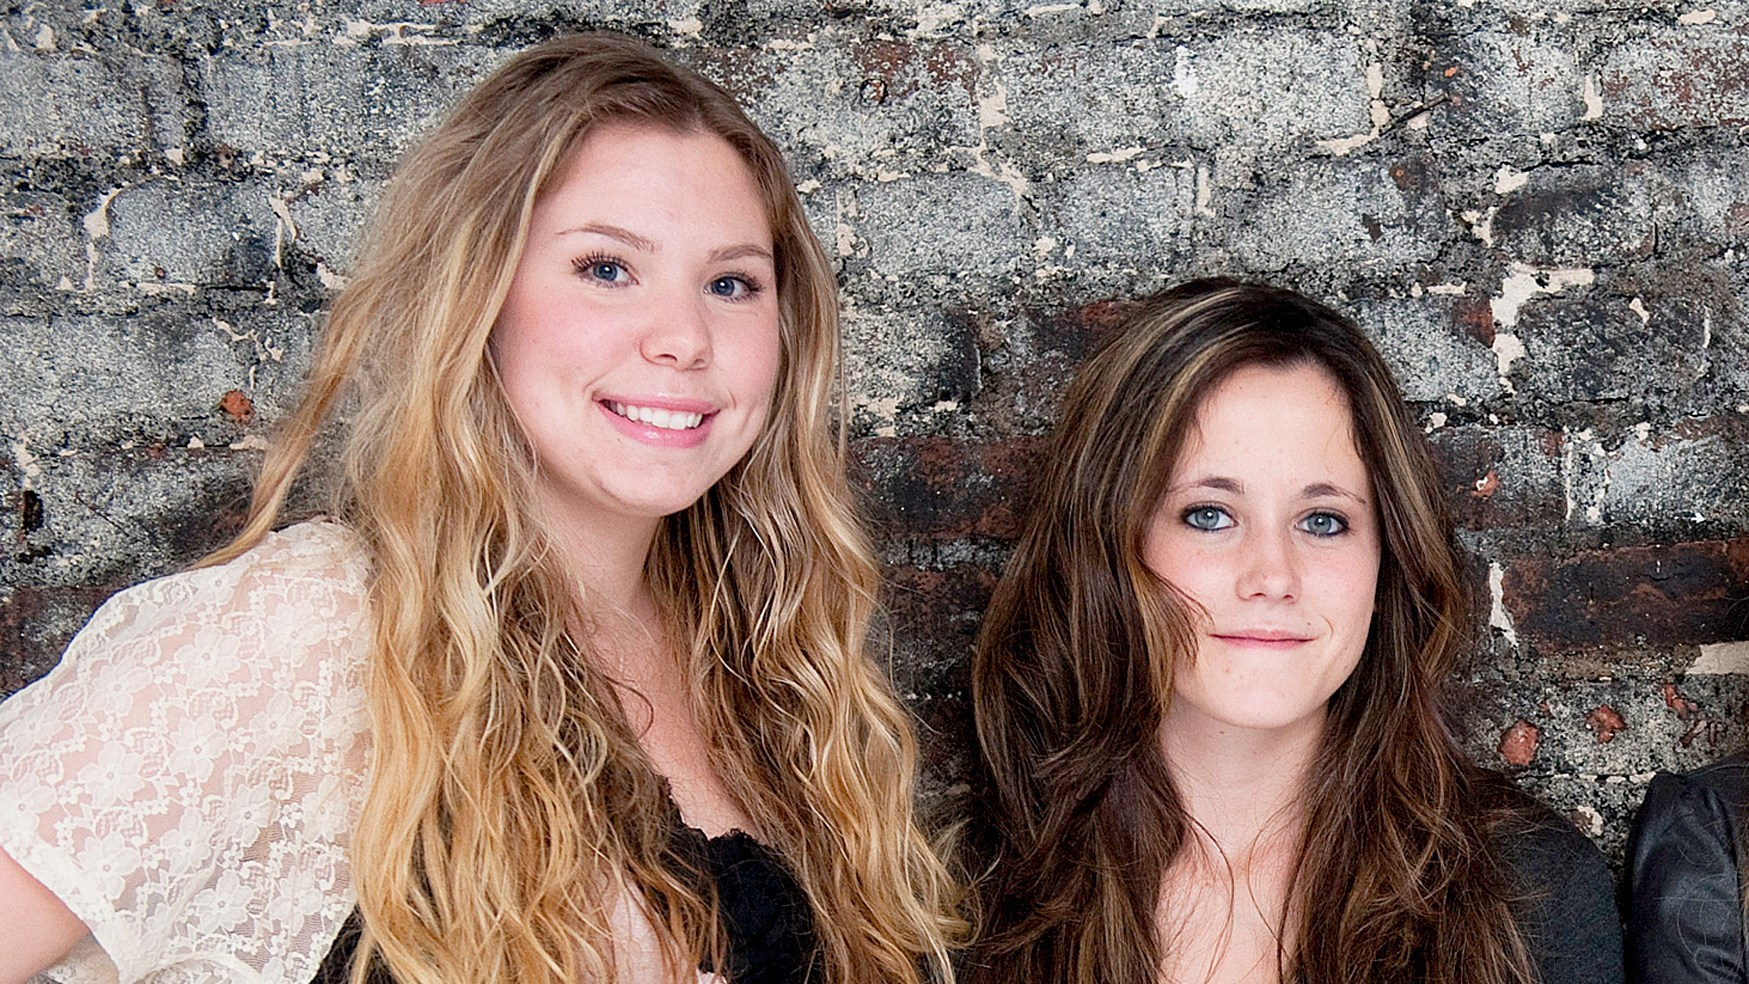 Kailyn Lowry and Jenelle Evans